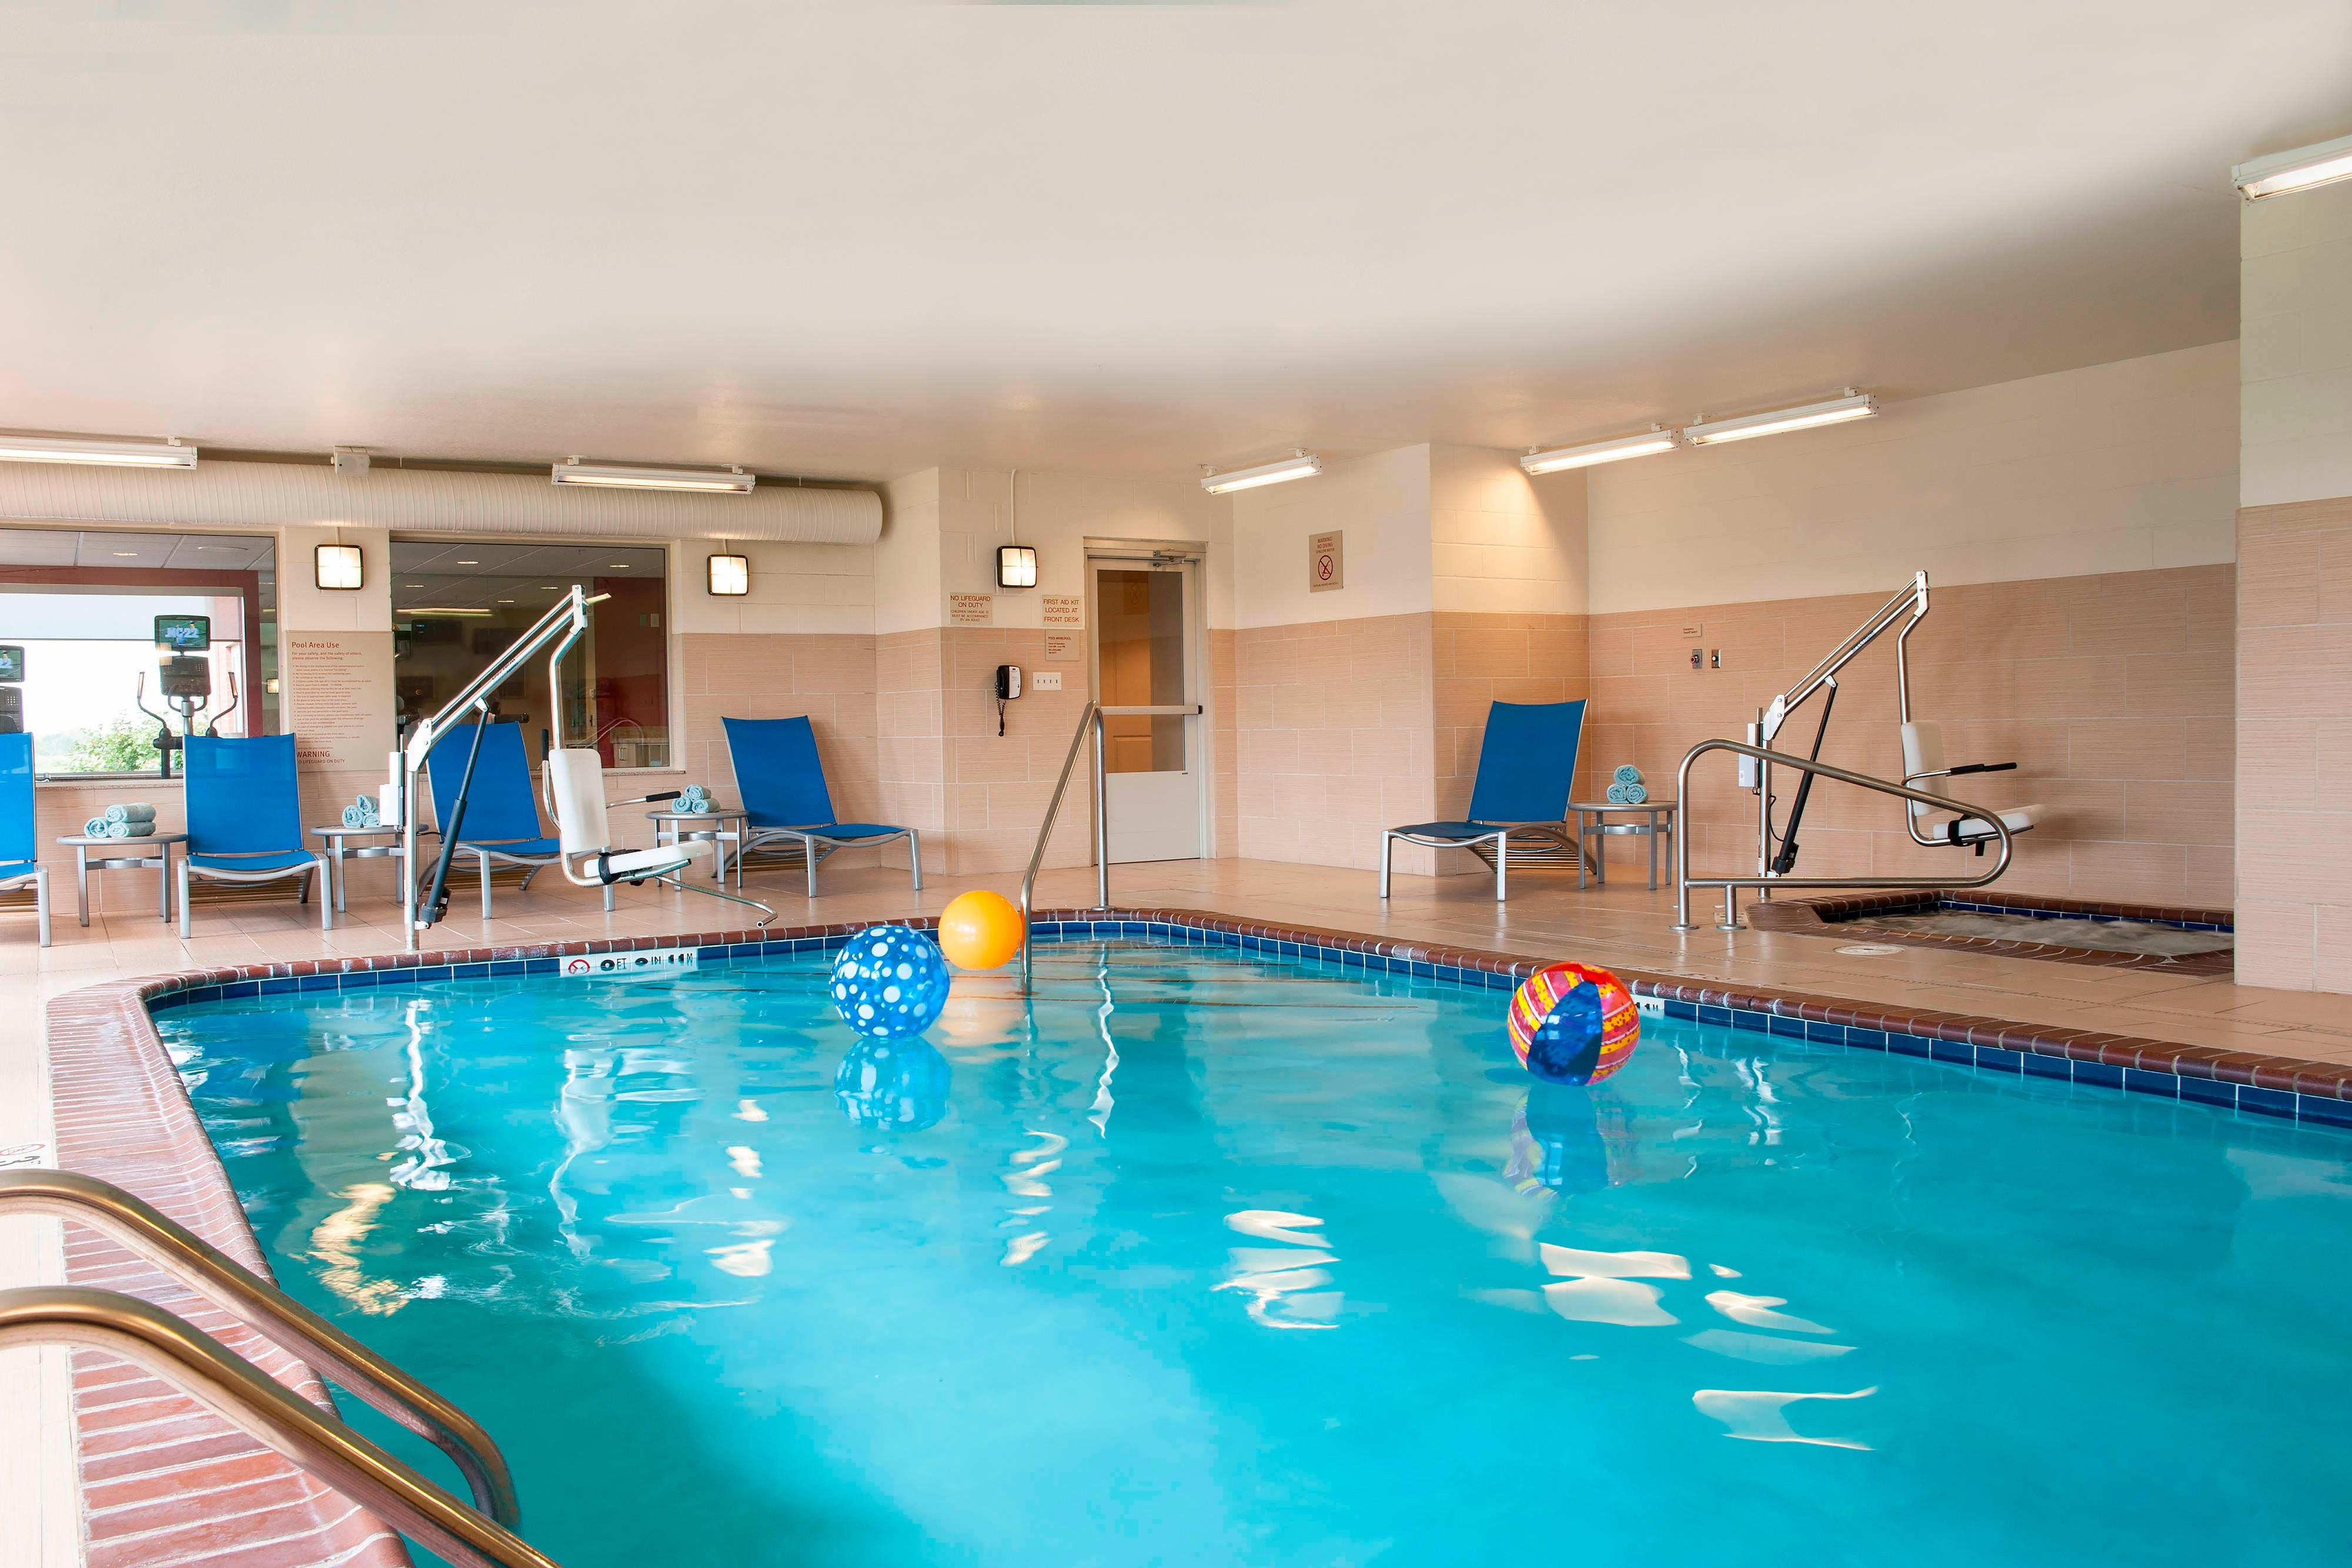 Indoor Pool at TownePlace Suites Des Moines Urbandale, IA